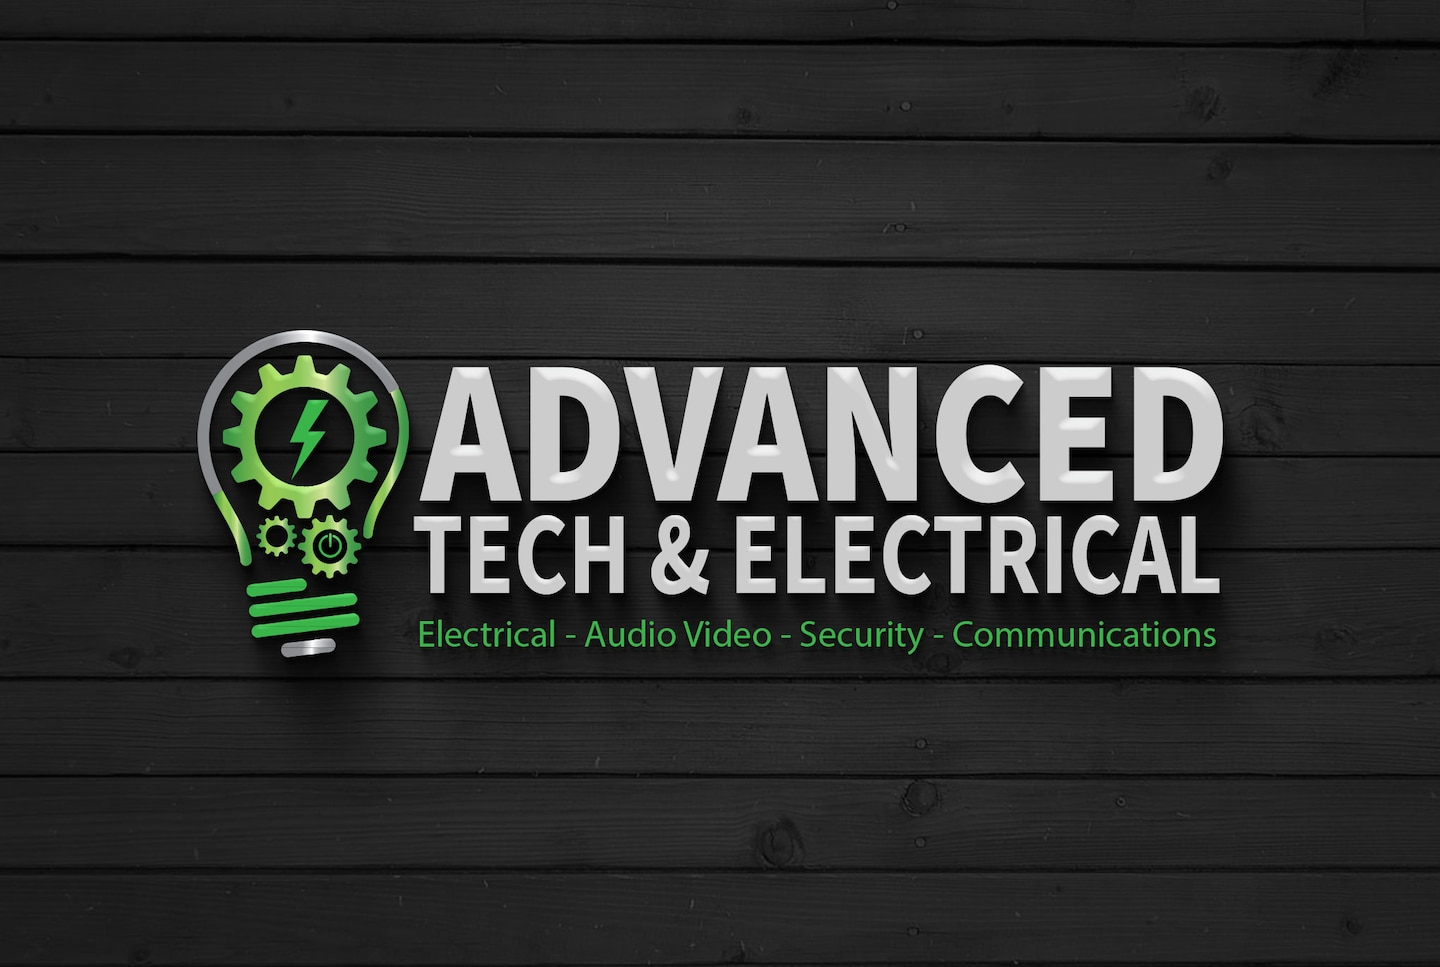 ADVANCED TECHNOLOGIES LLC